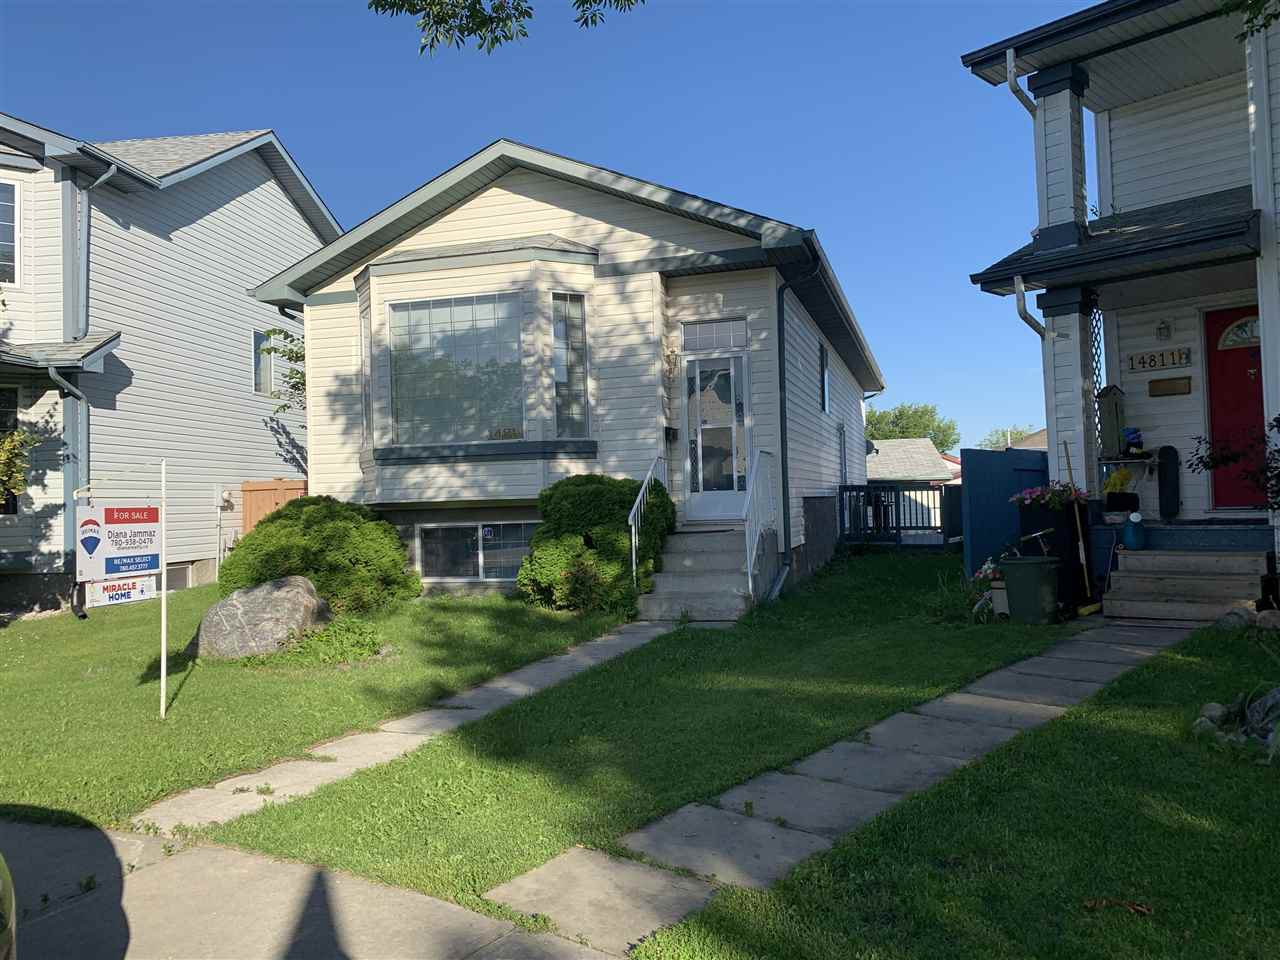 Main Photo: 14815 47 Street NW in Edmonton: Zone 02 House for sale : MLS®# E4204725